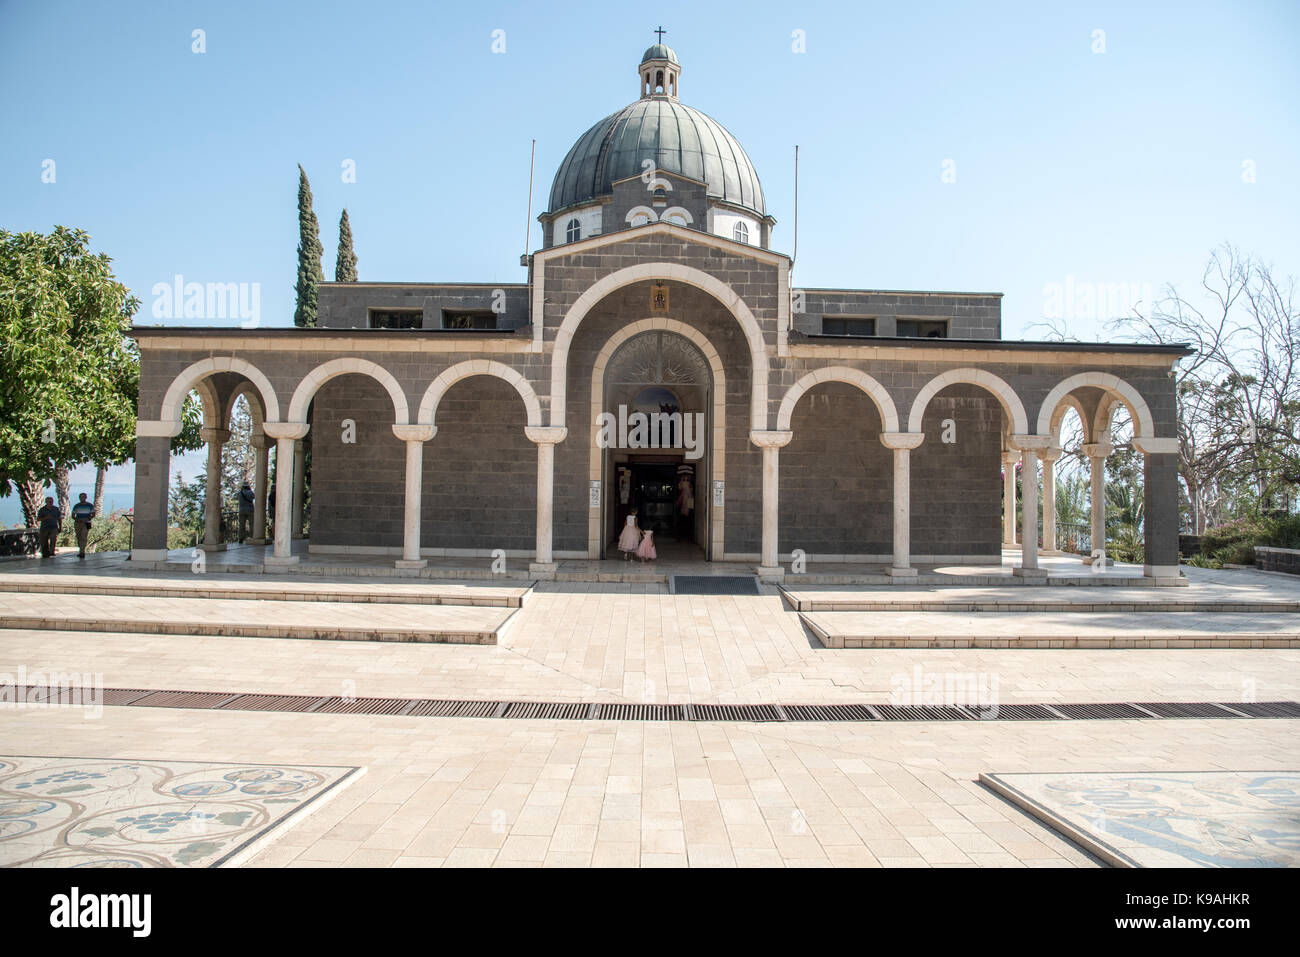 Church of the Beatitudes on the northern coast of the Sea of Galilee in Israel. The traditional spot where Jesus Stock Photo